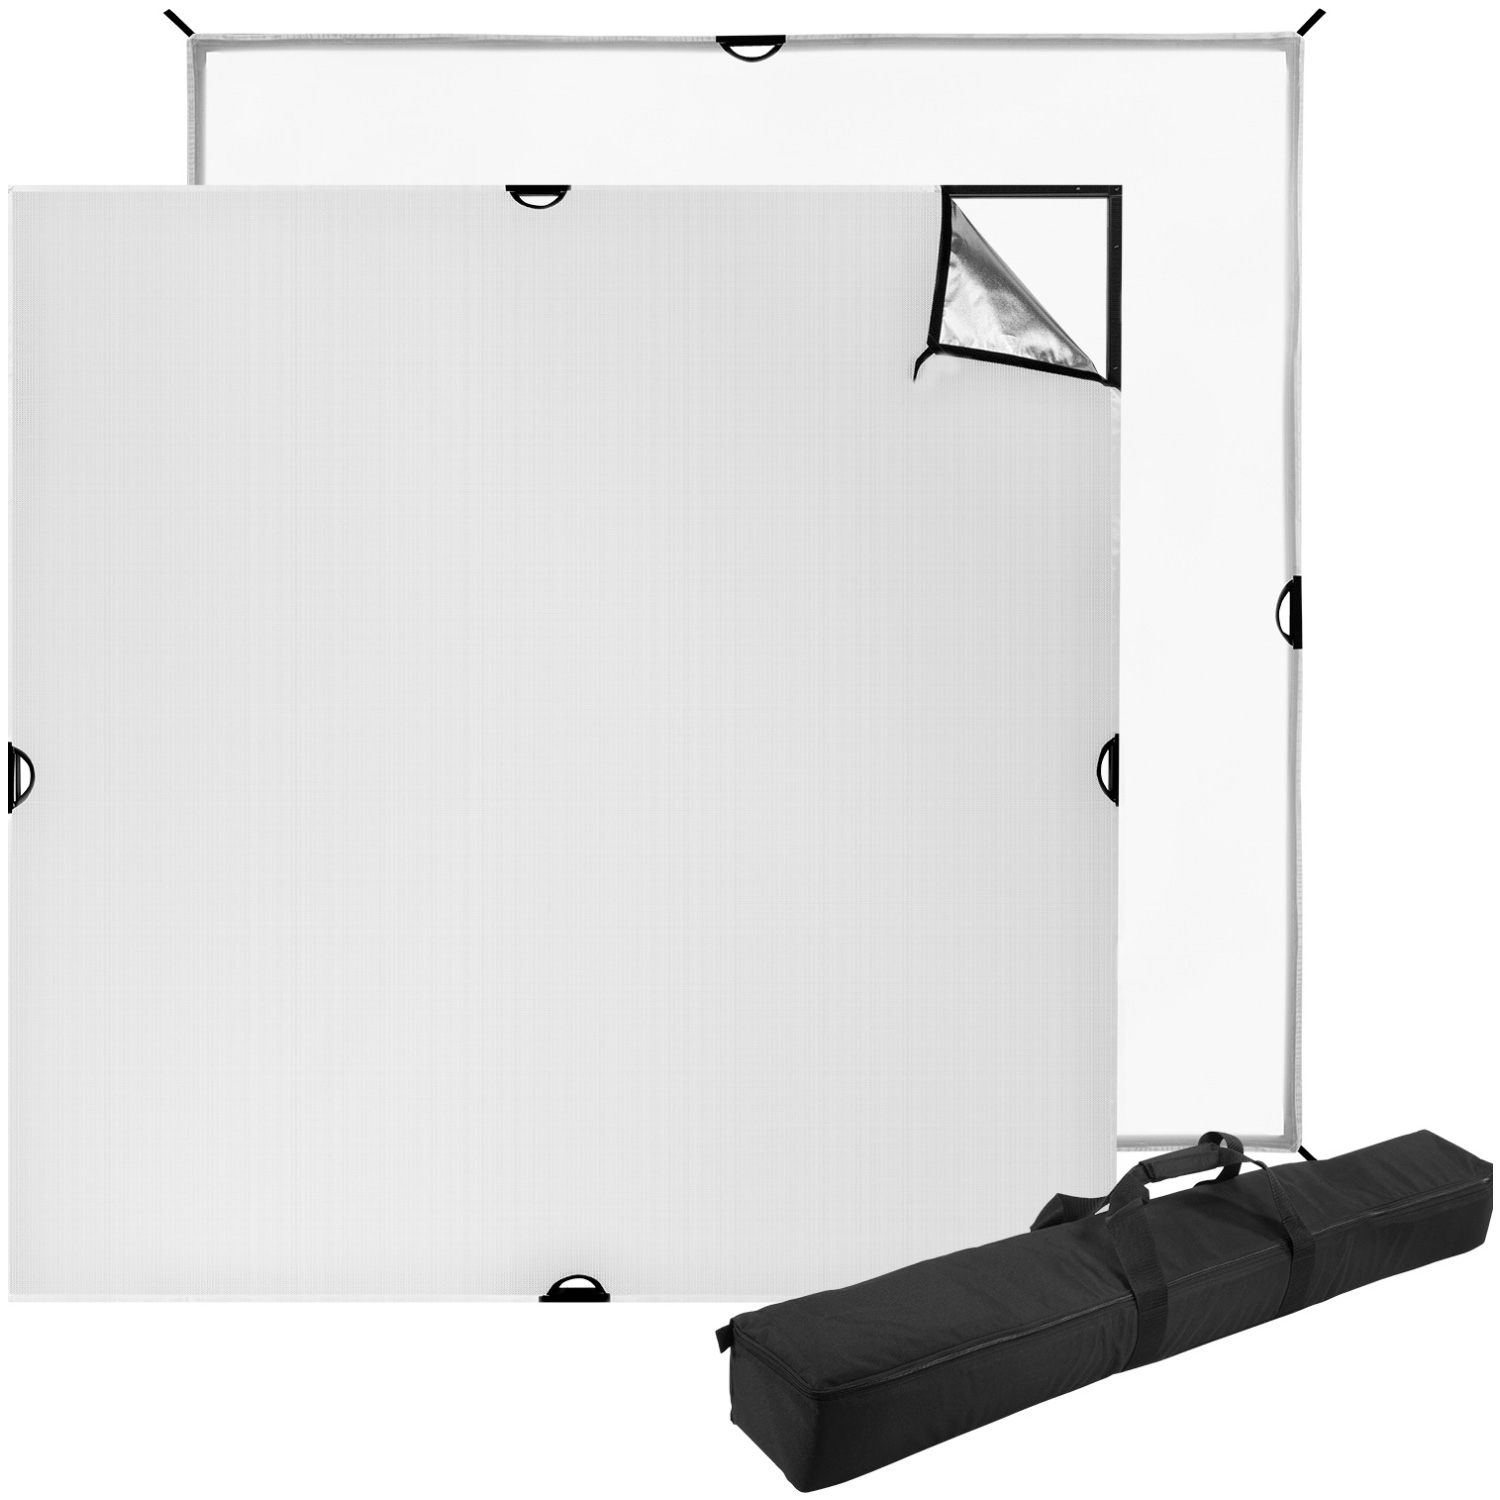 Scrim Jim Large Kit (71-in. x 71-in.)